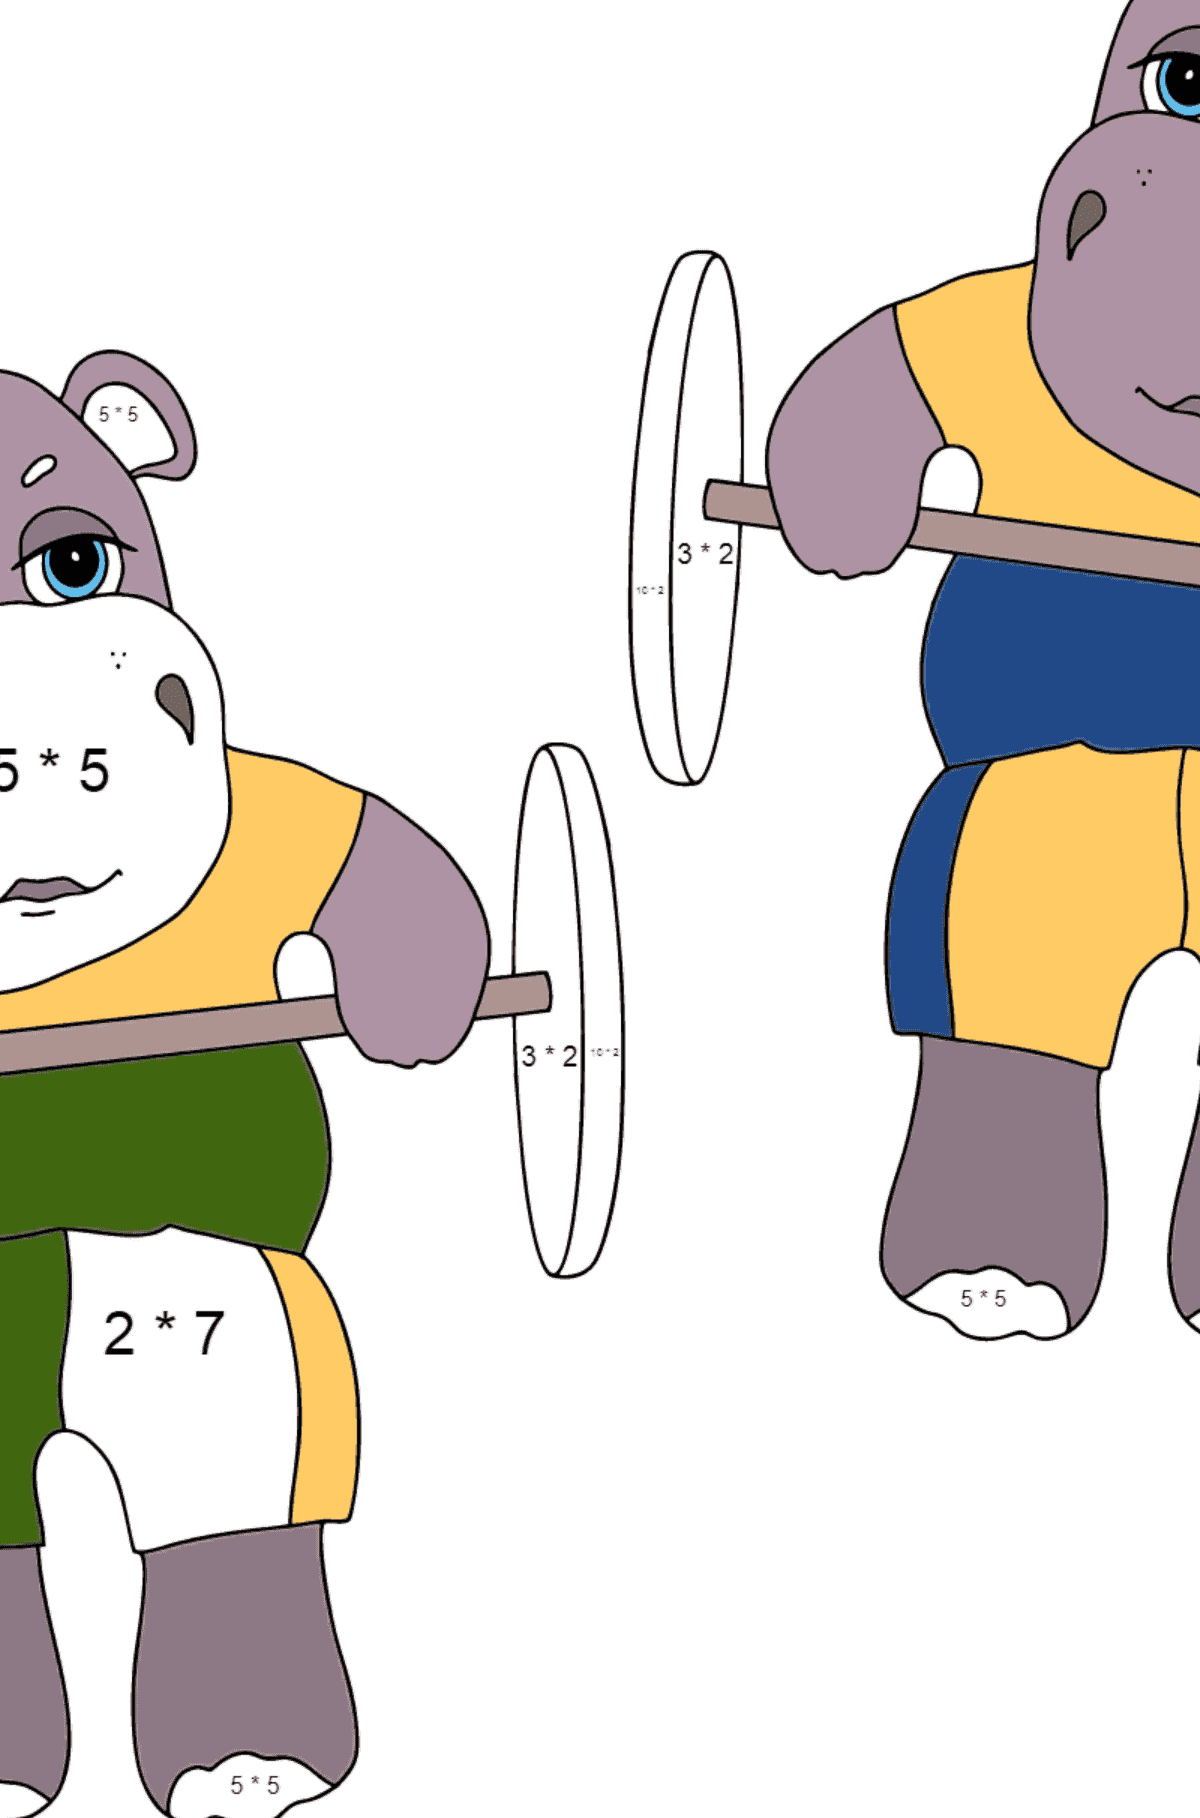 Coloring Page - Hippos are Exercising with a Barbell for Children  - Color by Number Multiplication